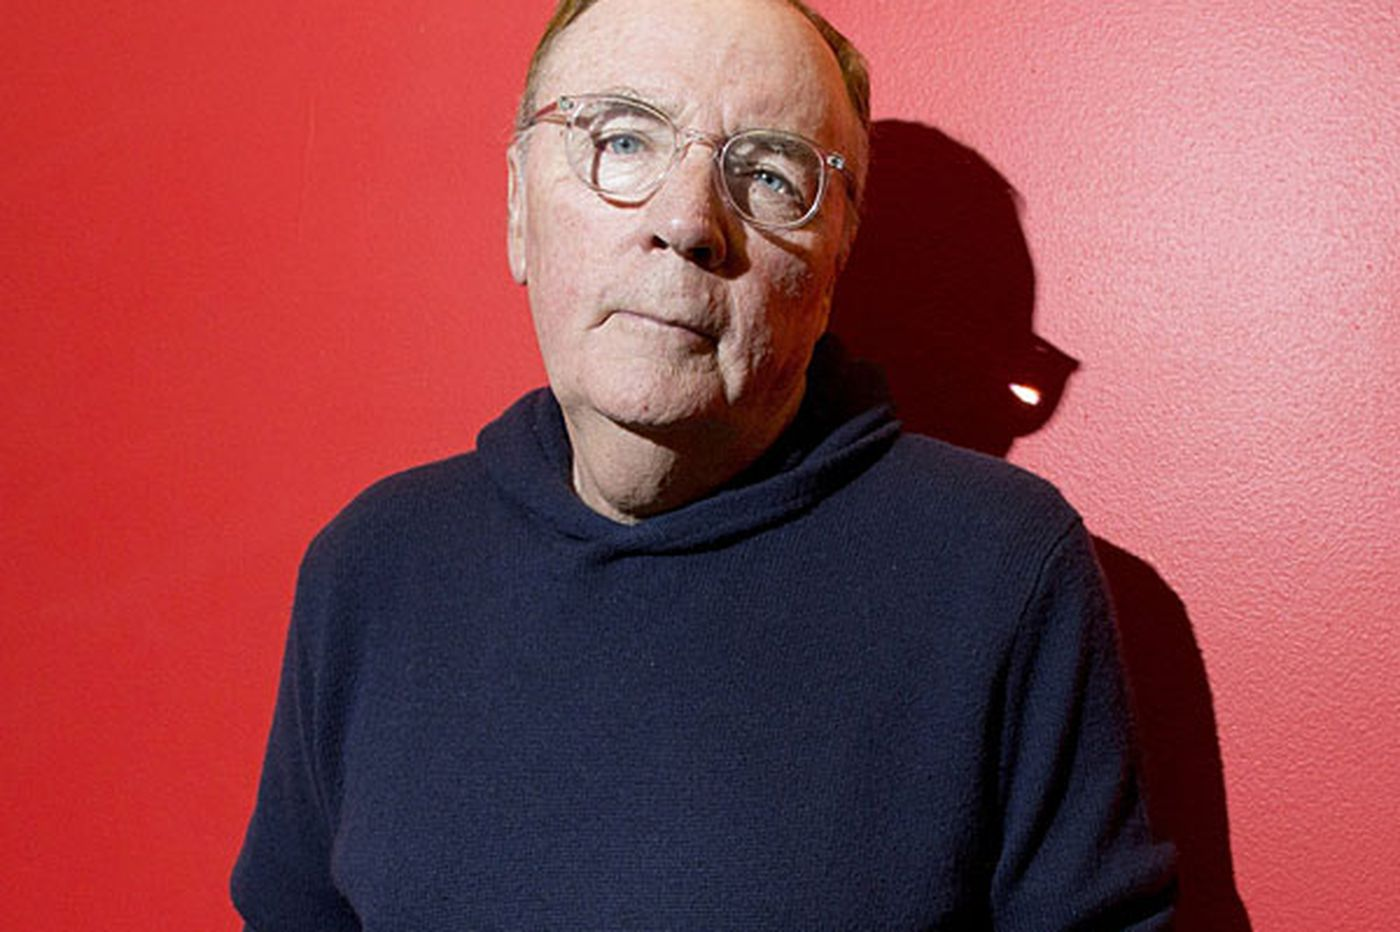 James Patterson seeks to develop new readers with library gift